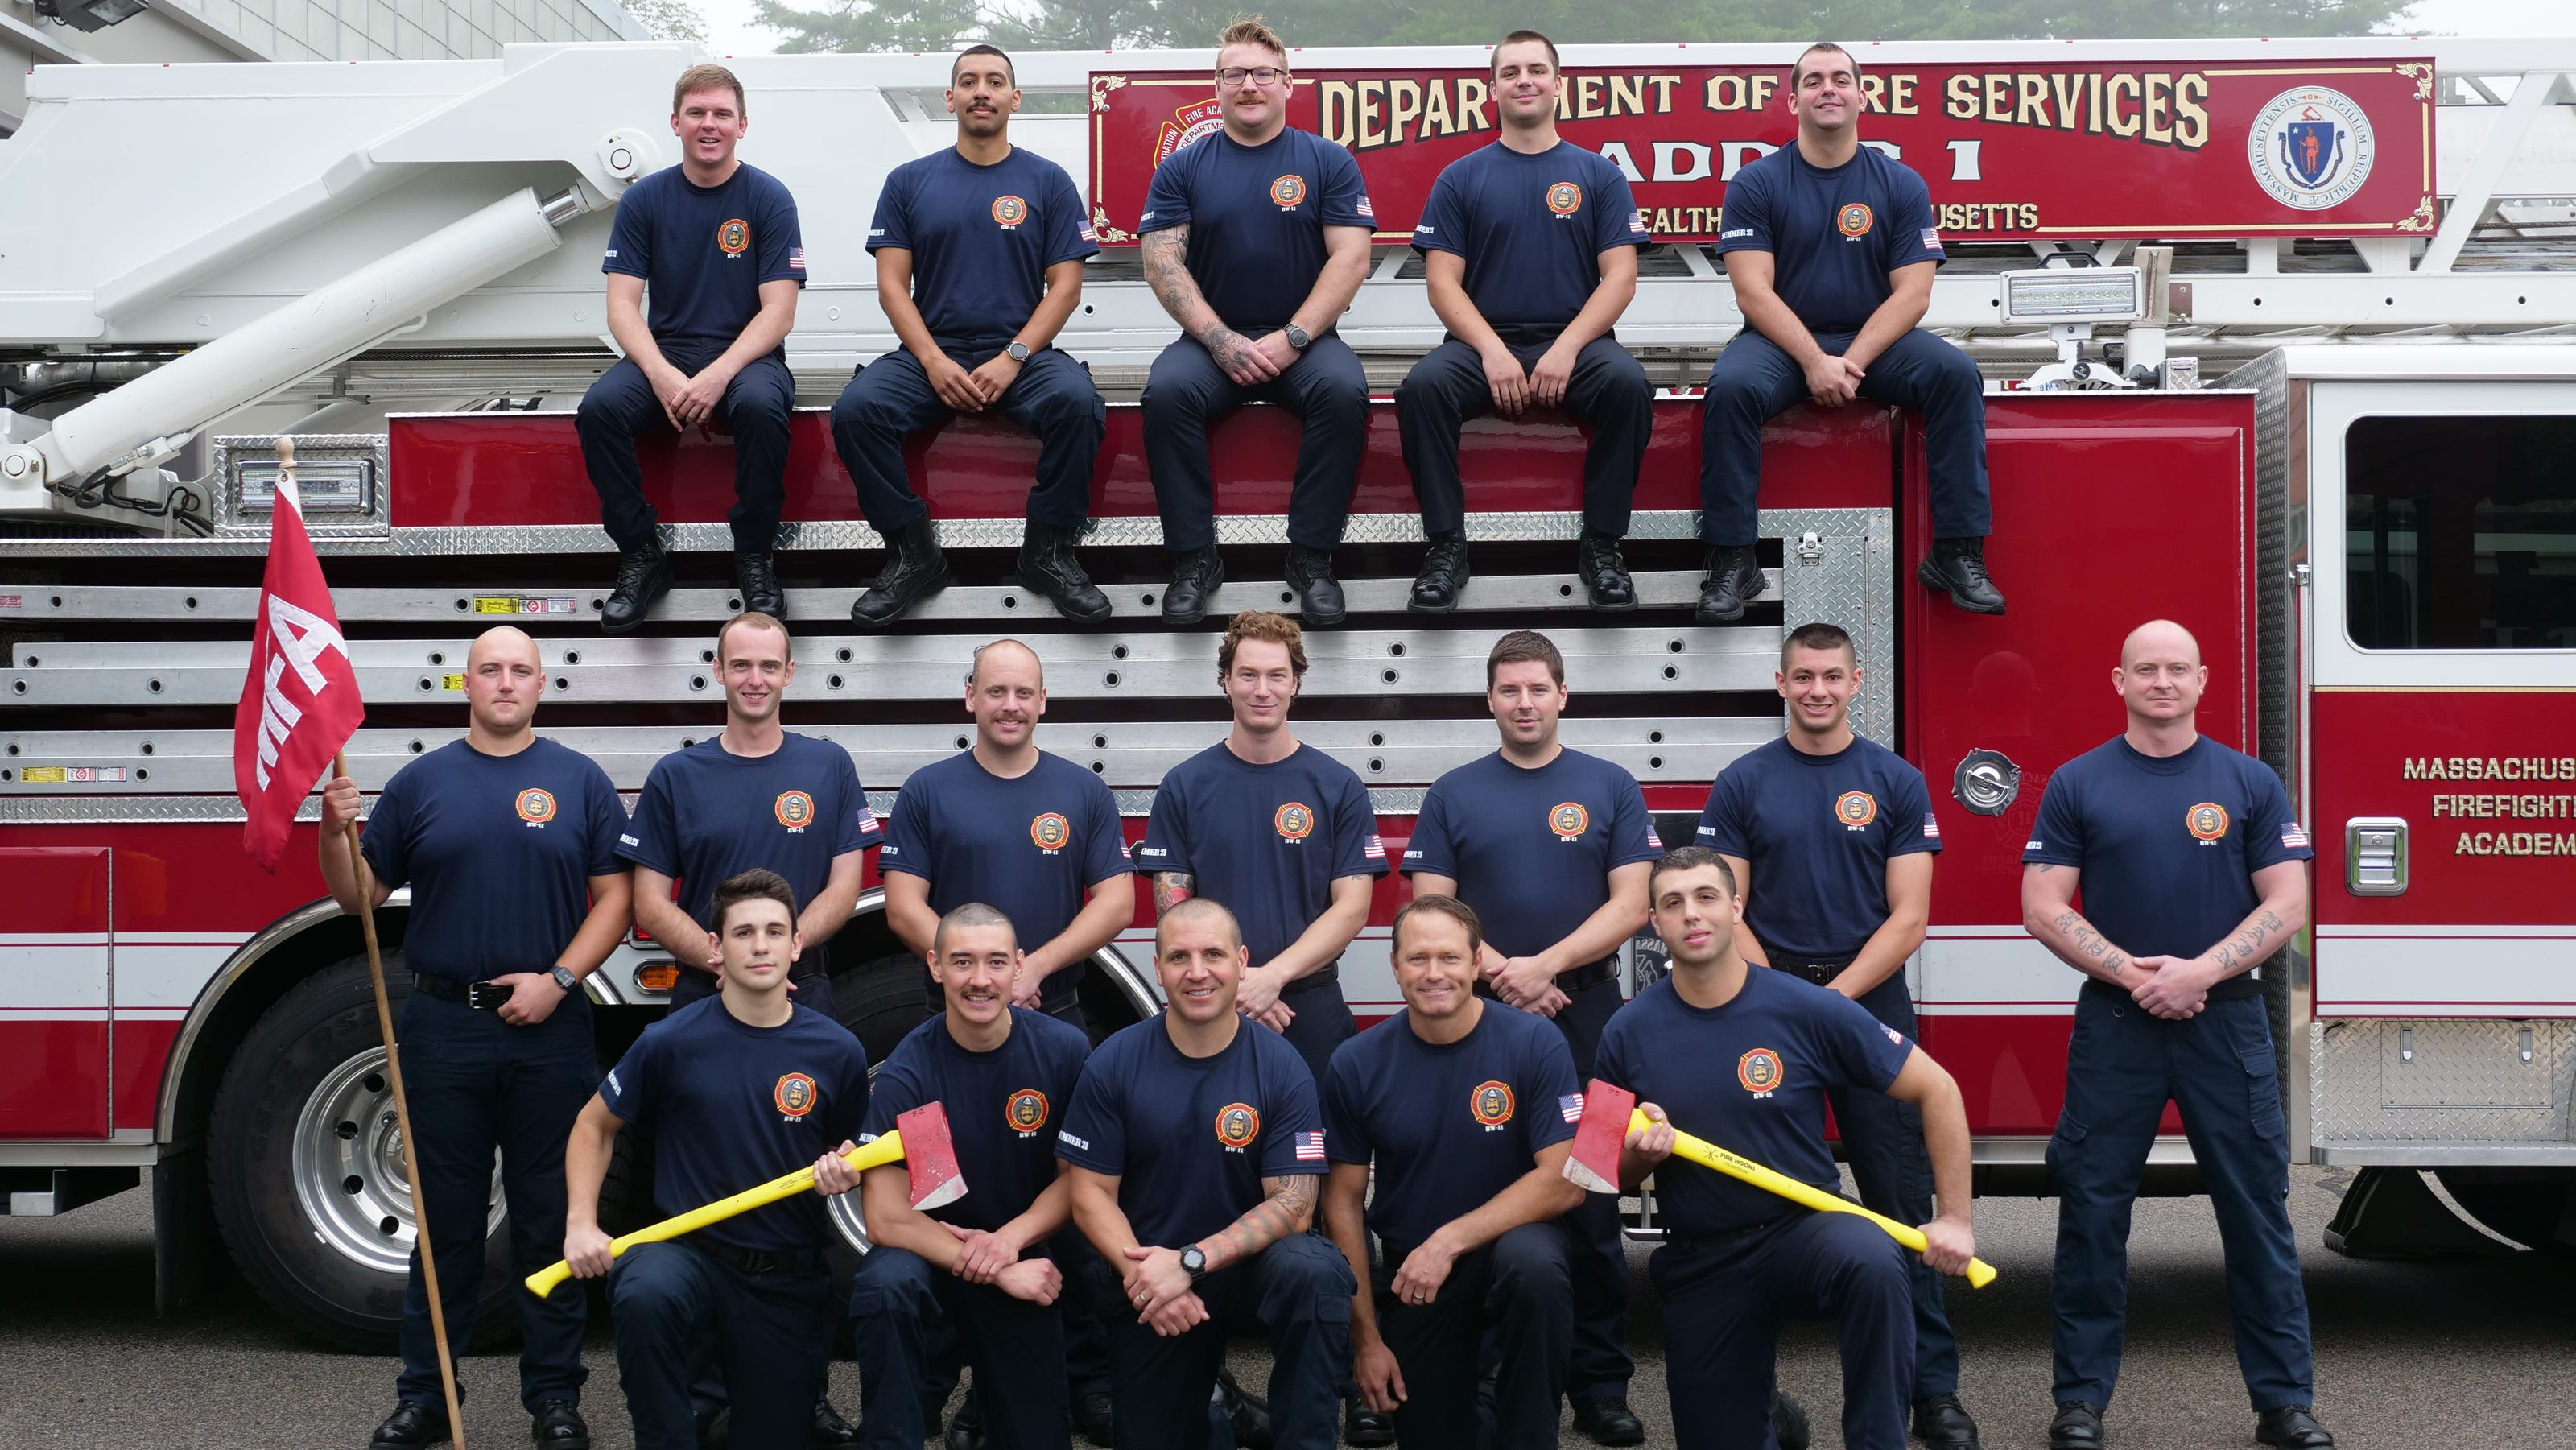 Local firefighters graduate from state fire academy